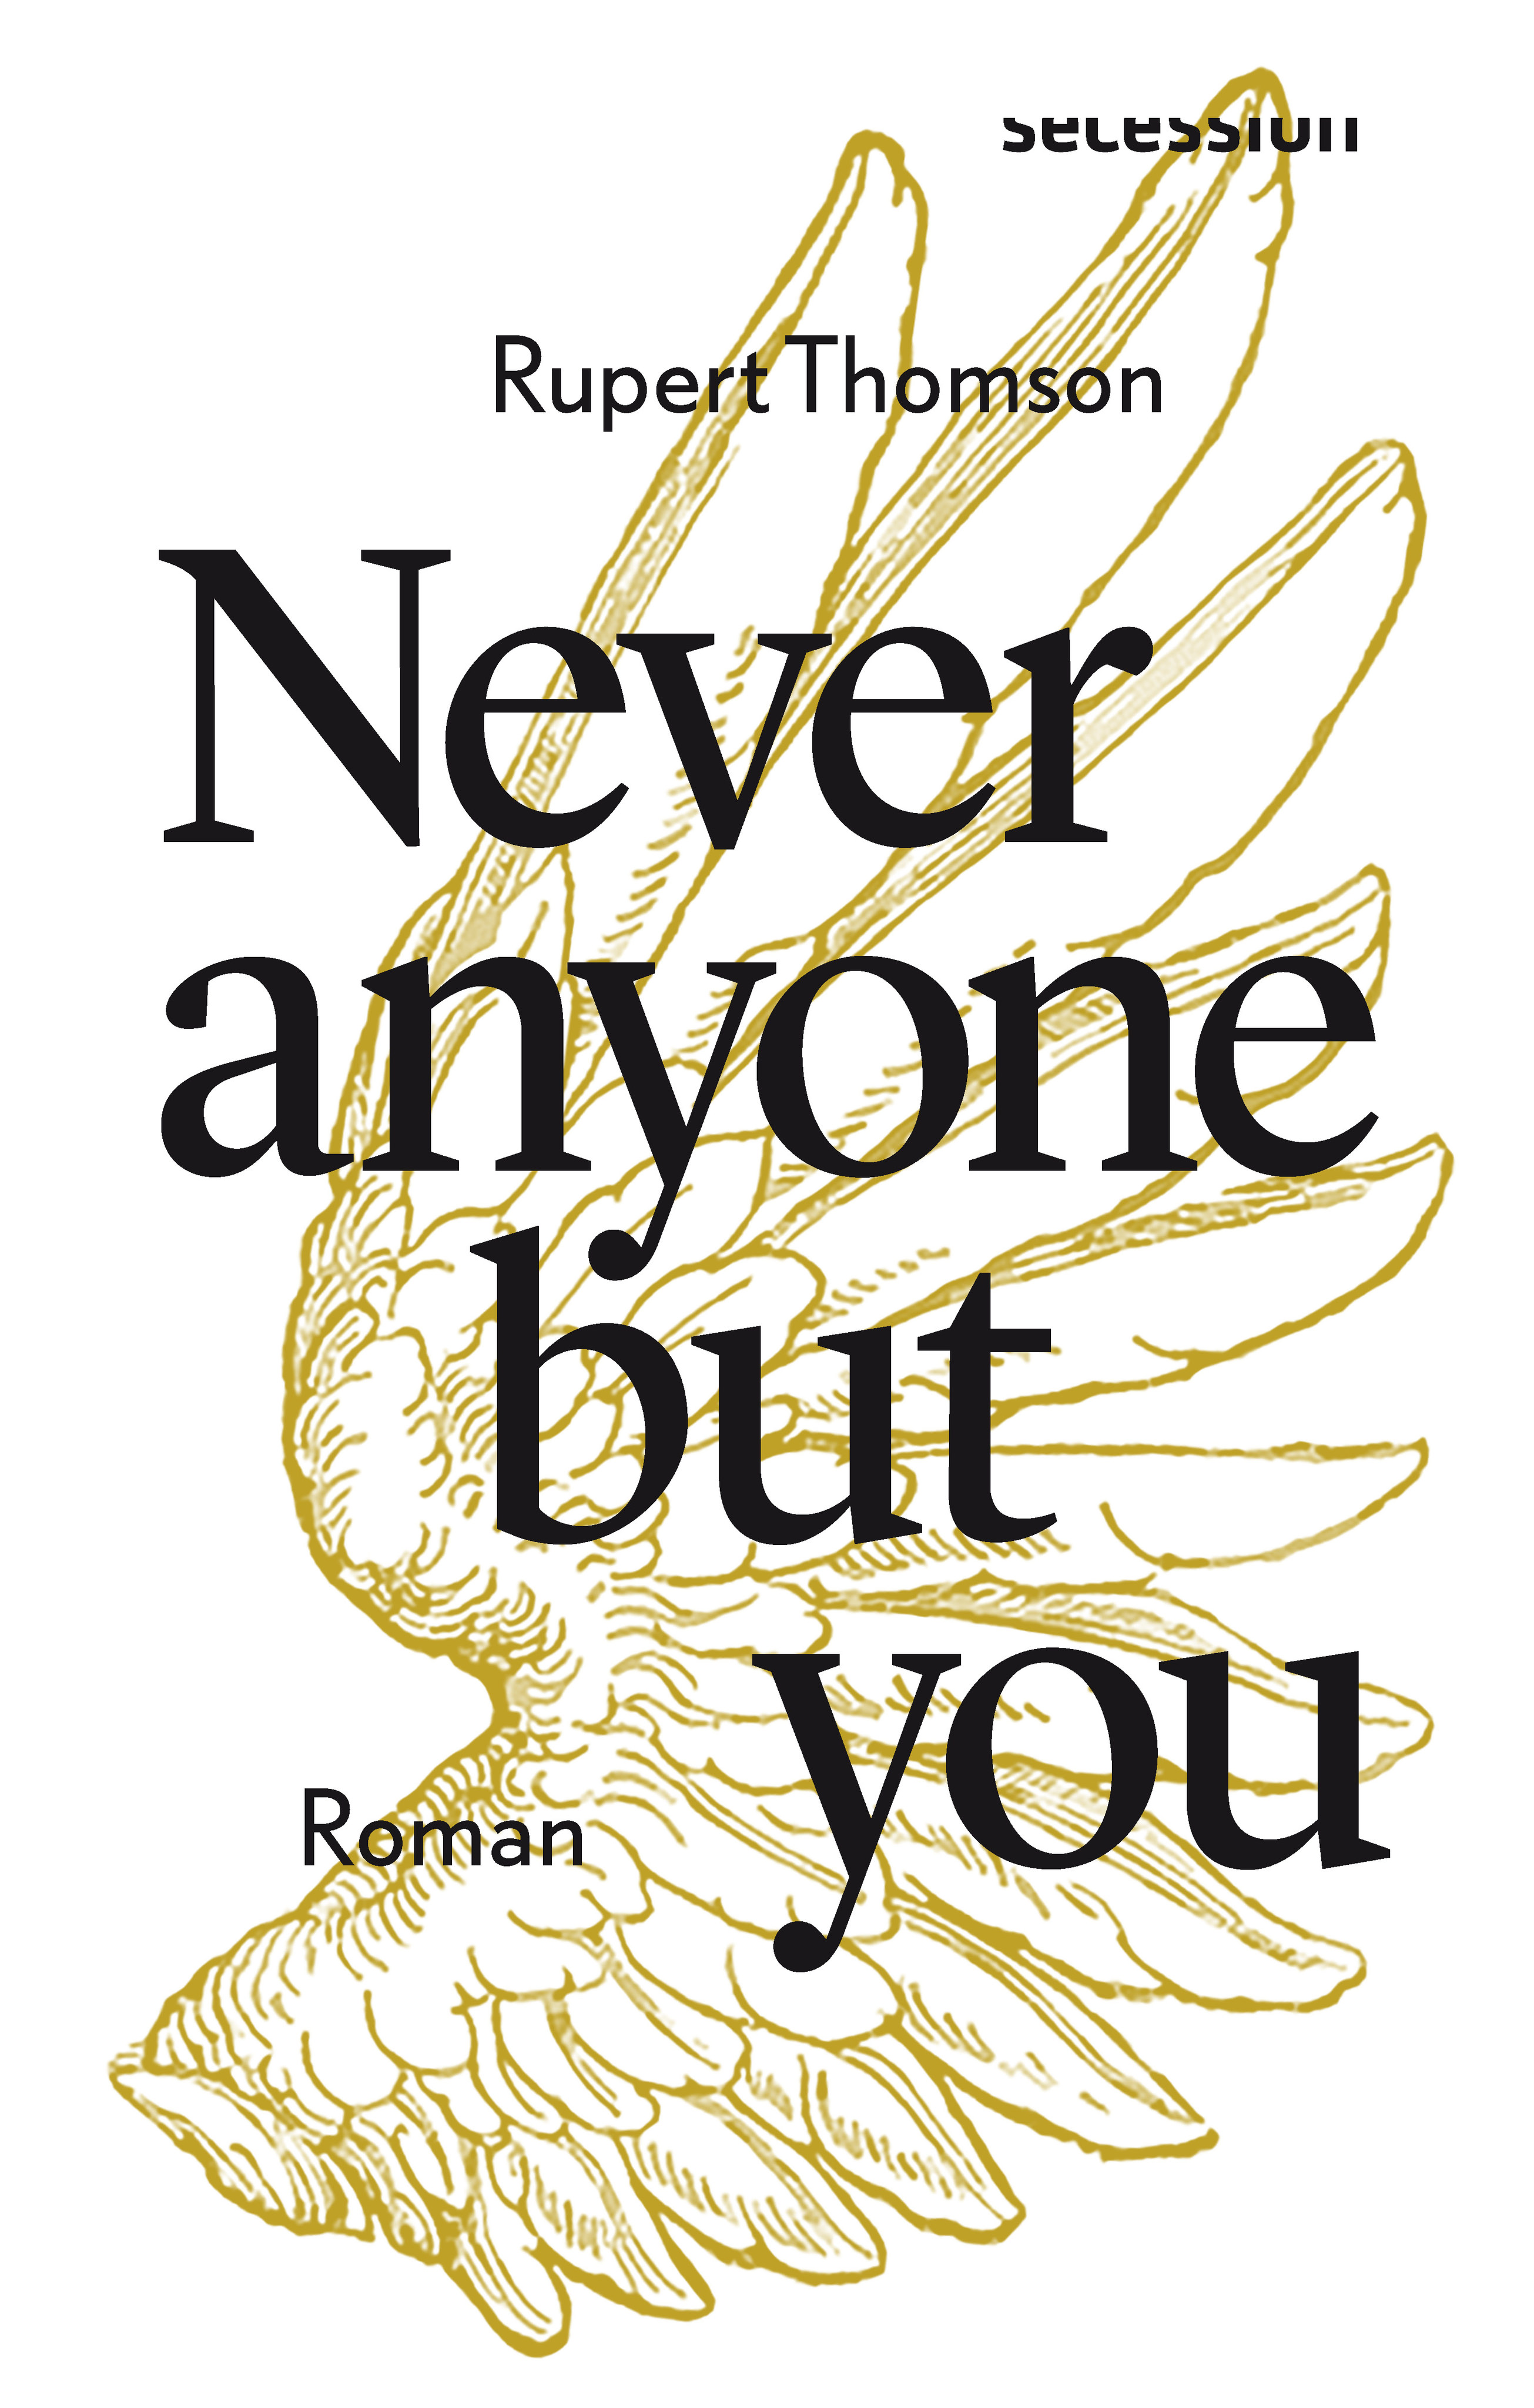 Buchcover: Rupert Thomson: Never anyone but you